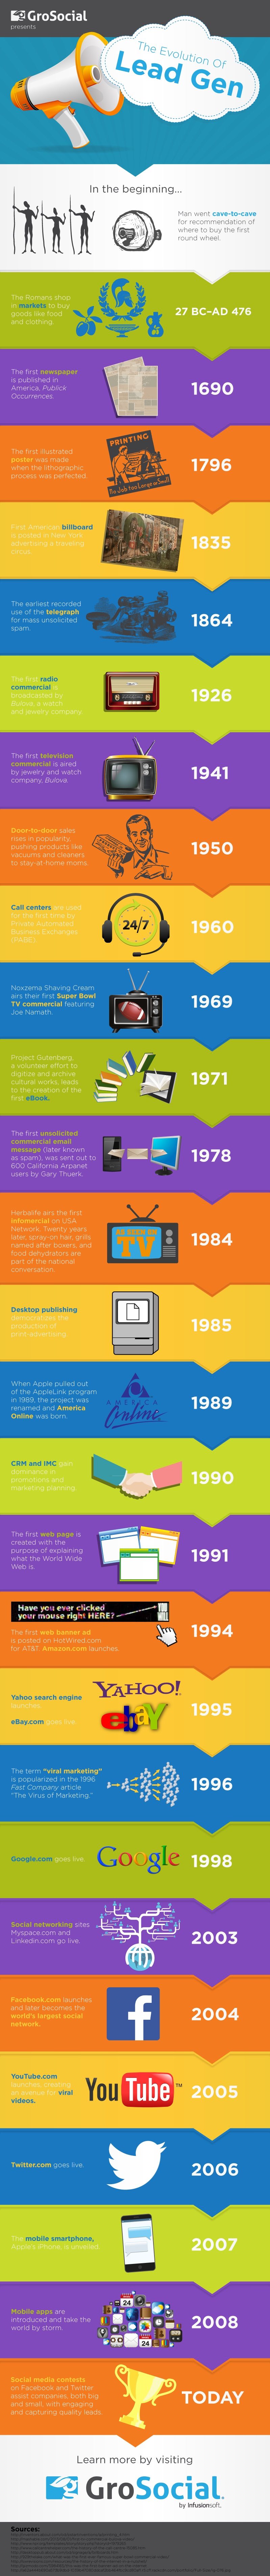 Lead Generation Infographic Evolution of Lead Generation